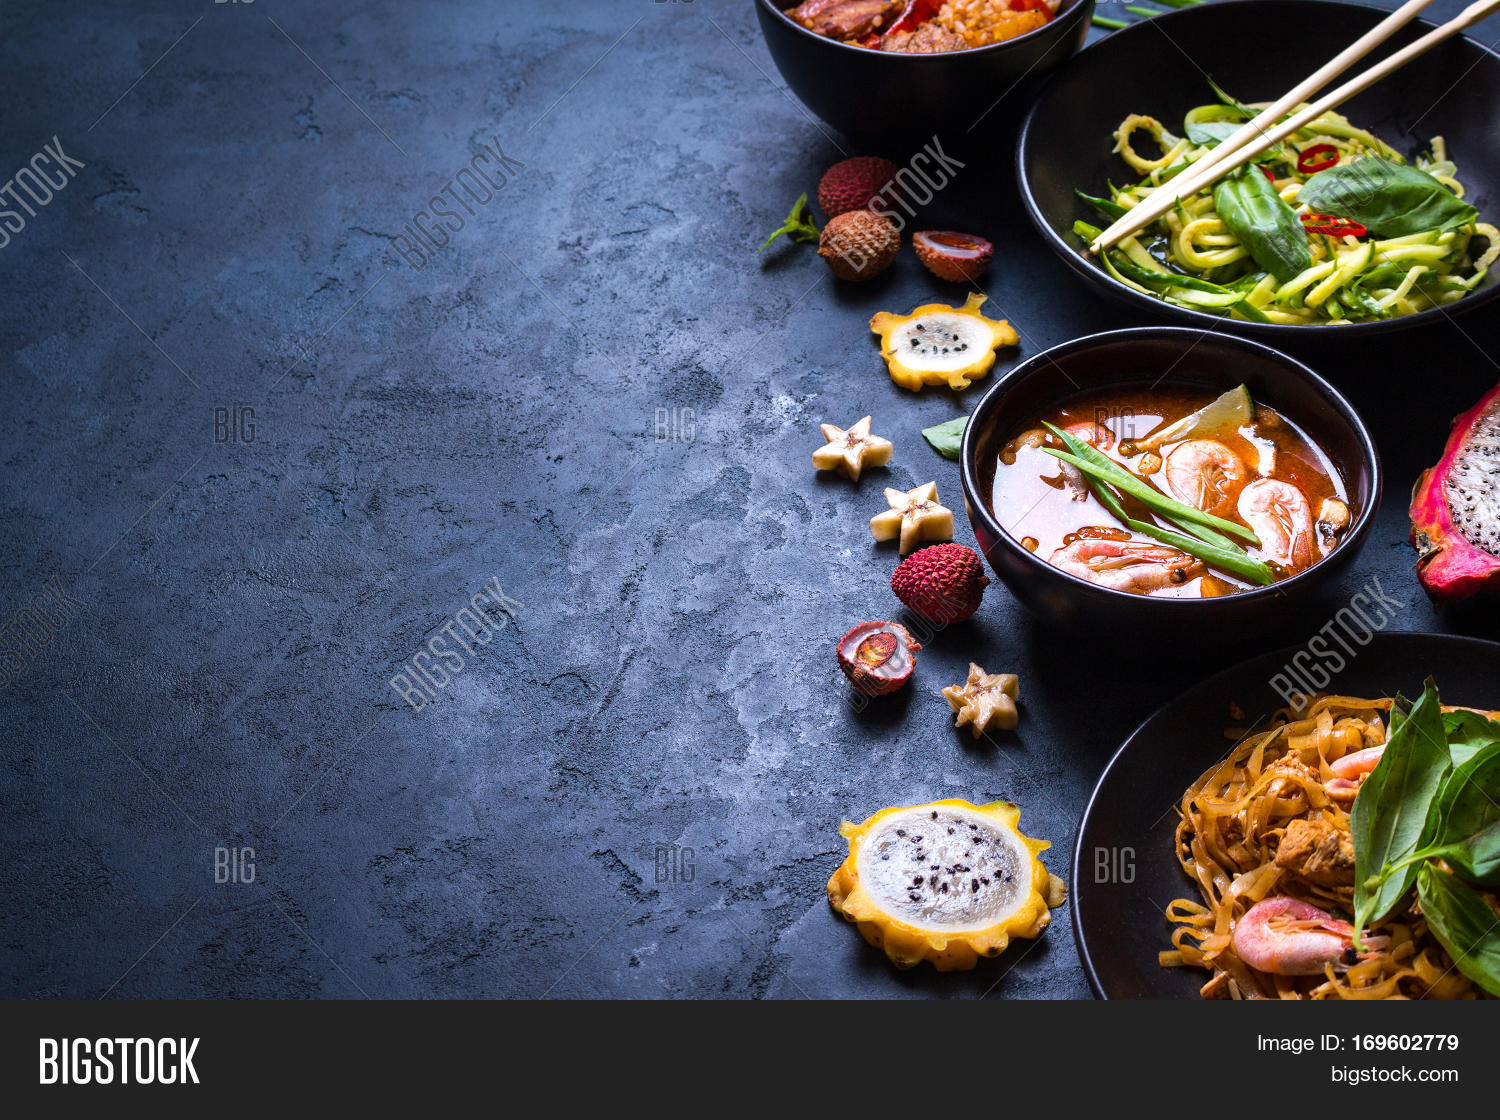 Thai Food Background Image Amp Photo Free Trial Bigstock